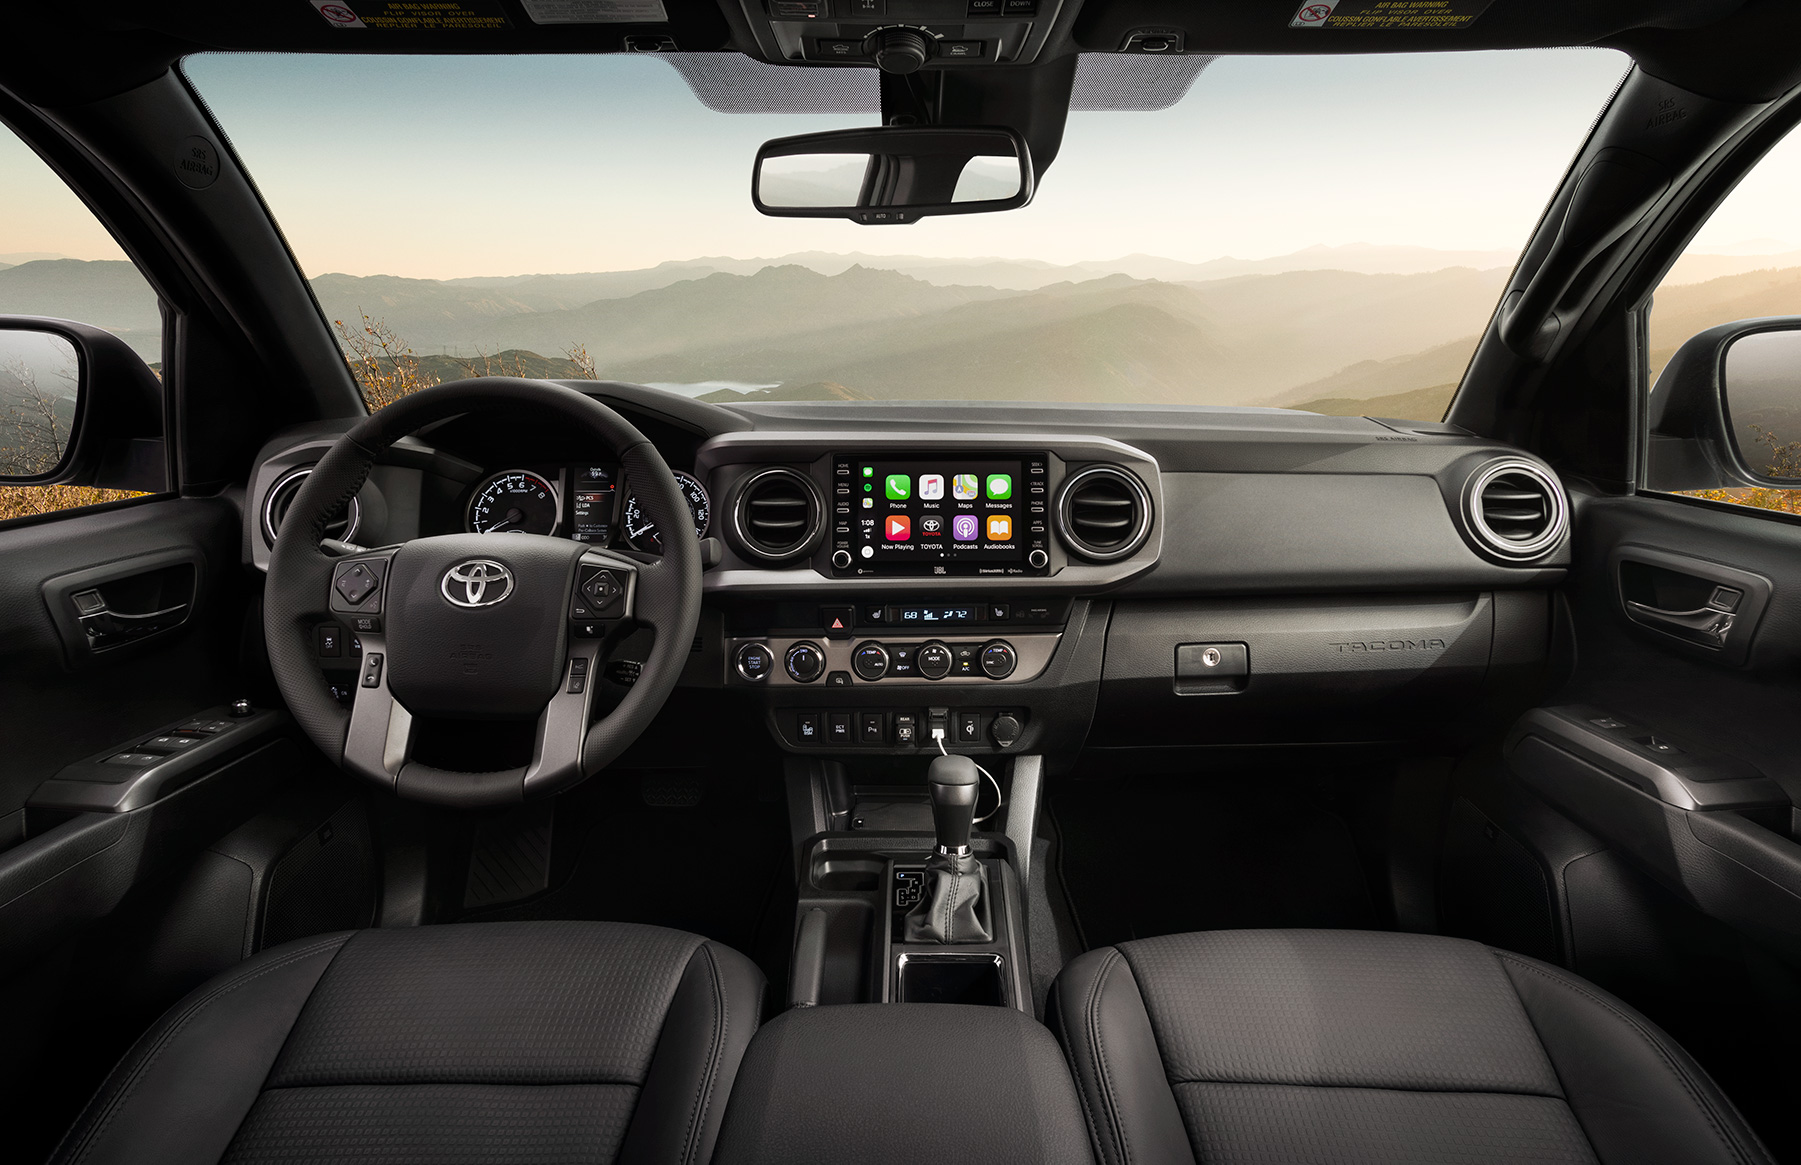 Model Features of the 2020 Toyota Tacoma at Tri County Toyota in Royersford | The dashboard of the 2020 Tacoma